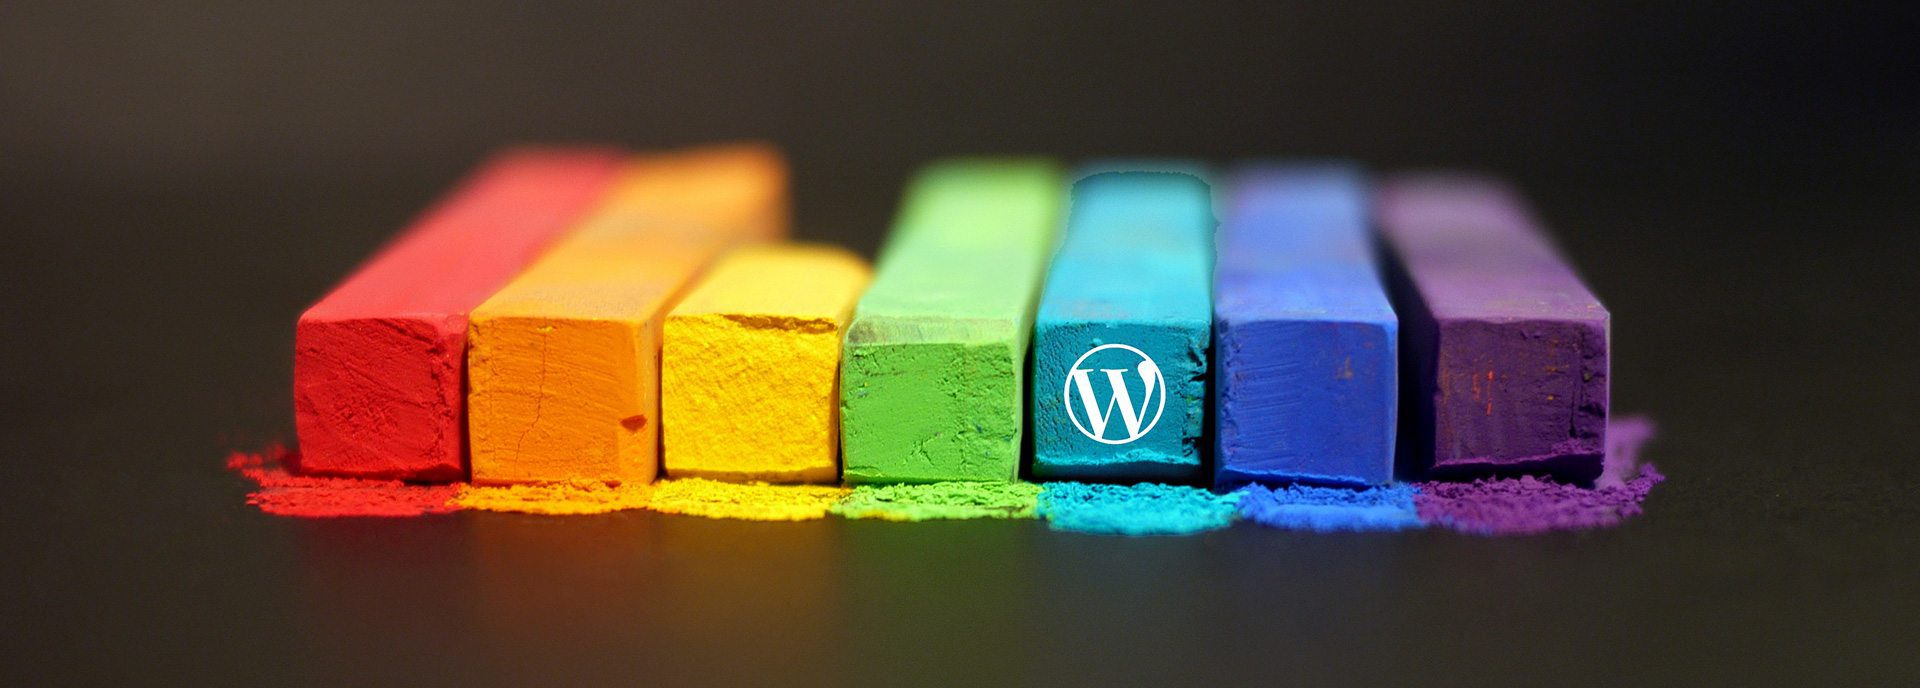 WordPress sites are not as cheap as you think, not if you want results